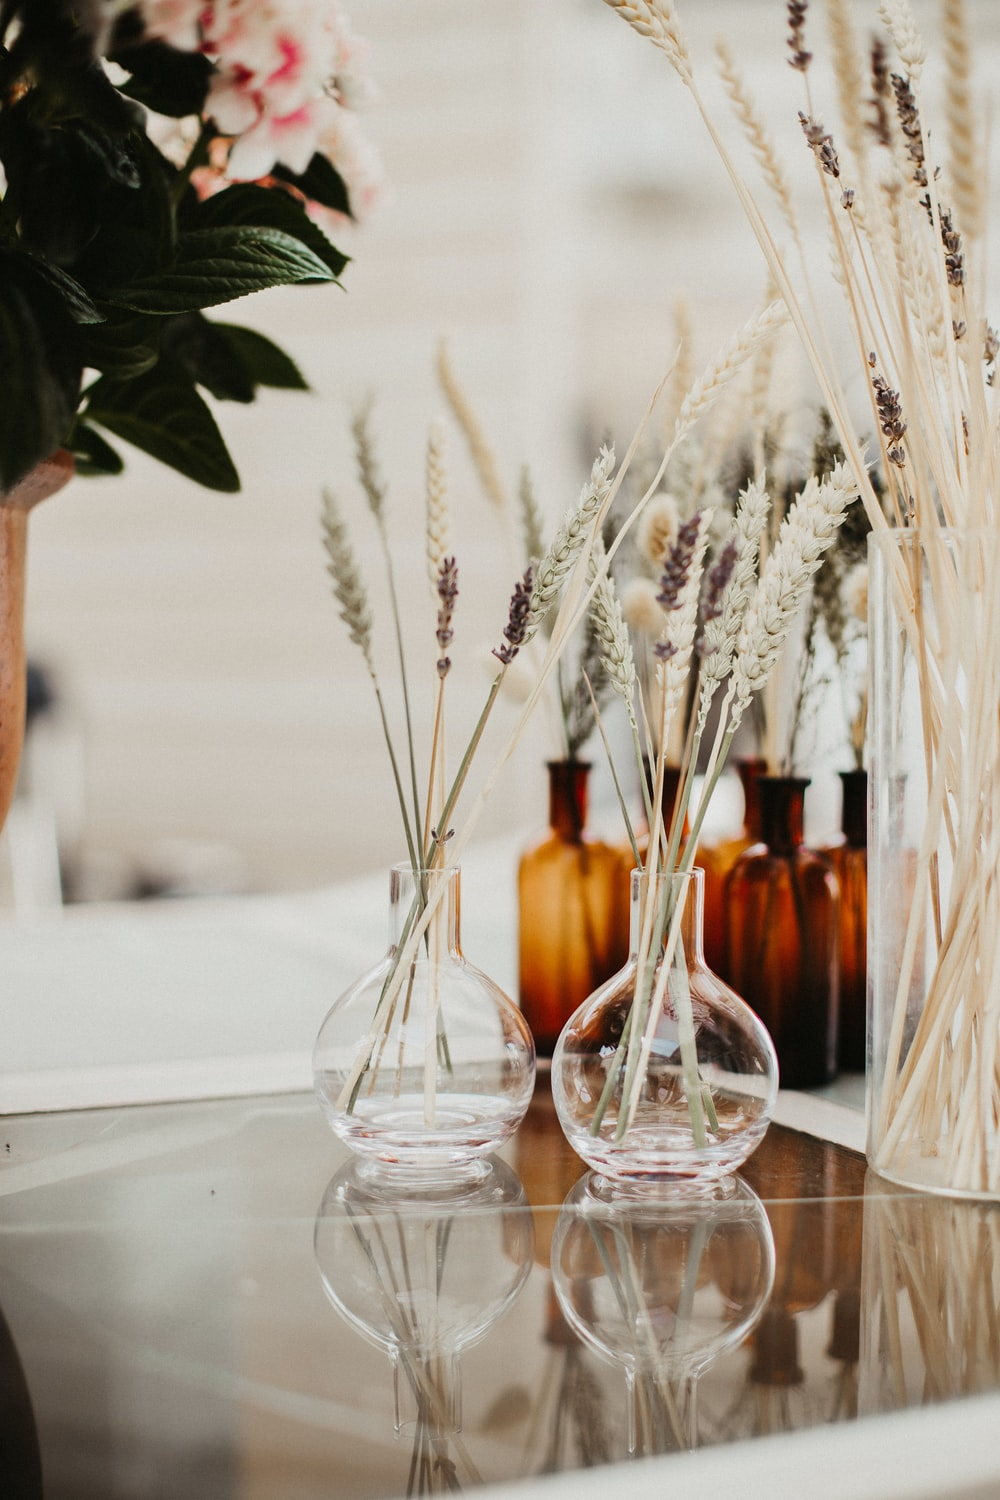 clear glass bottles on white table